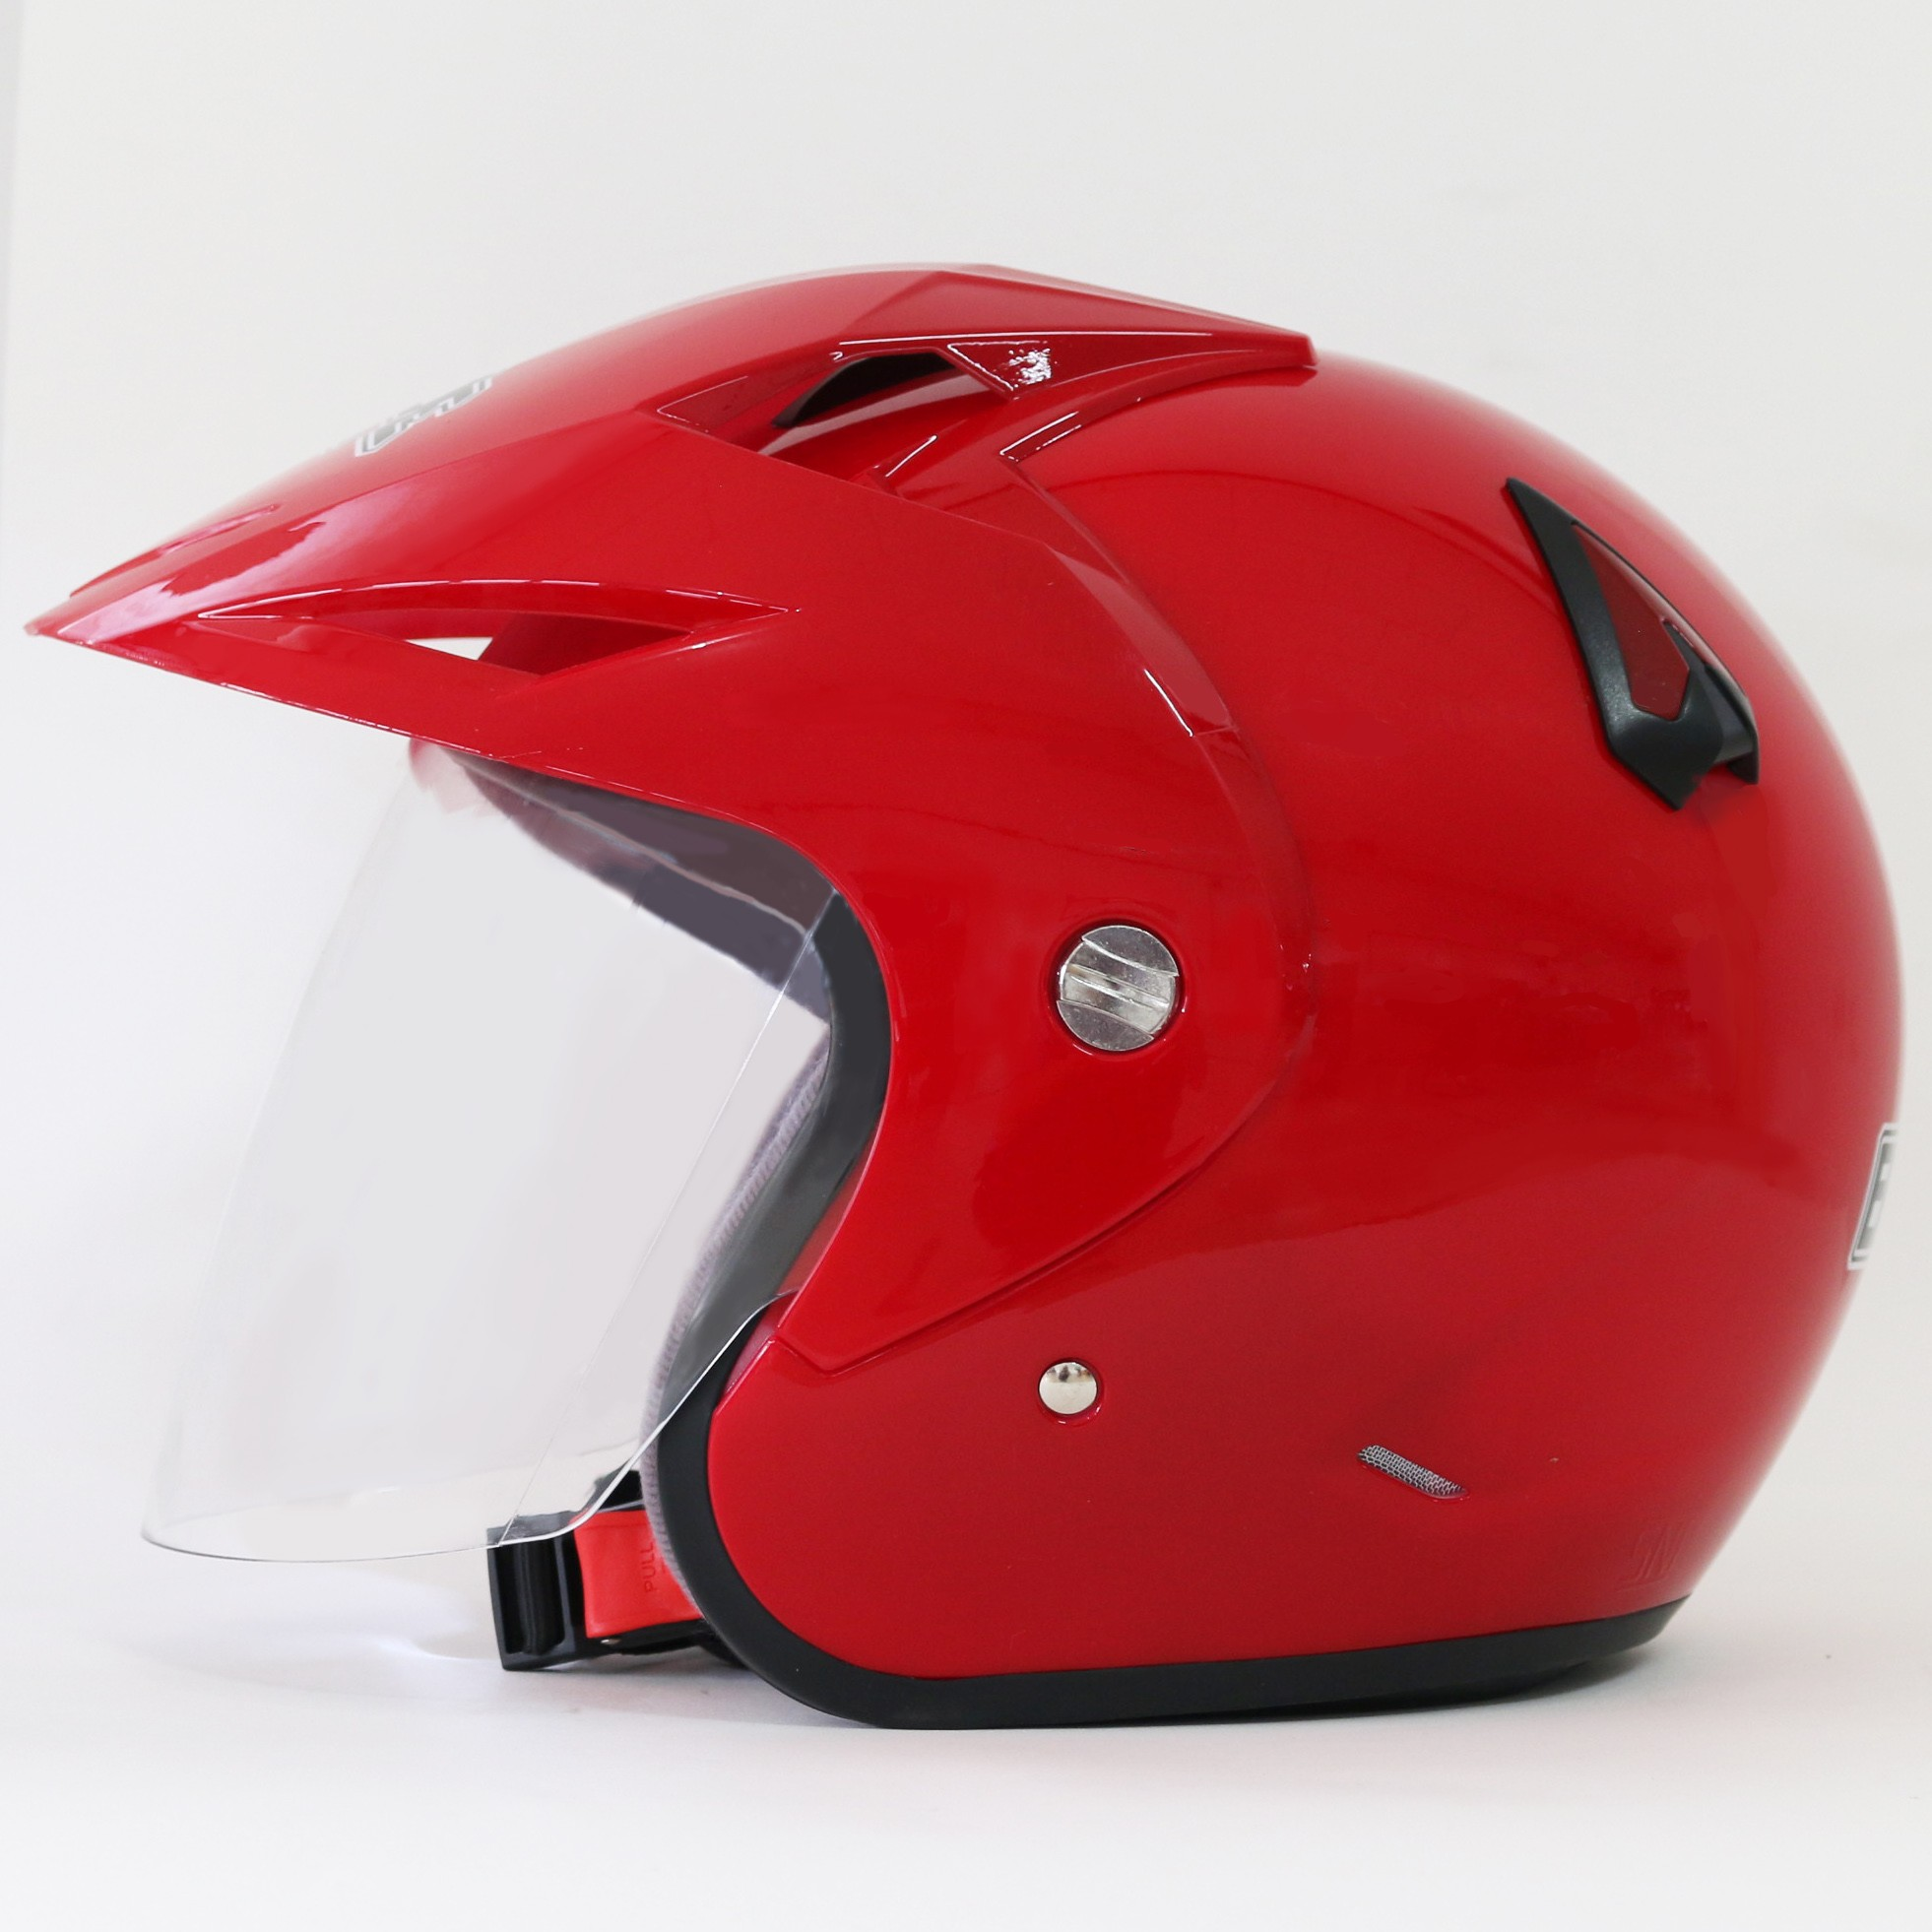 EROE R (Royal Red) - Solid - Half Face Helmet